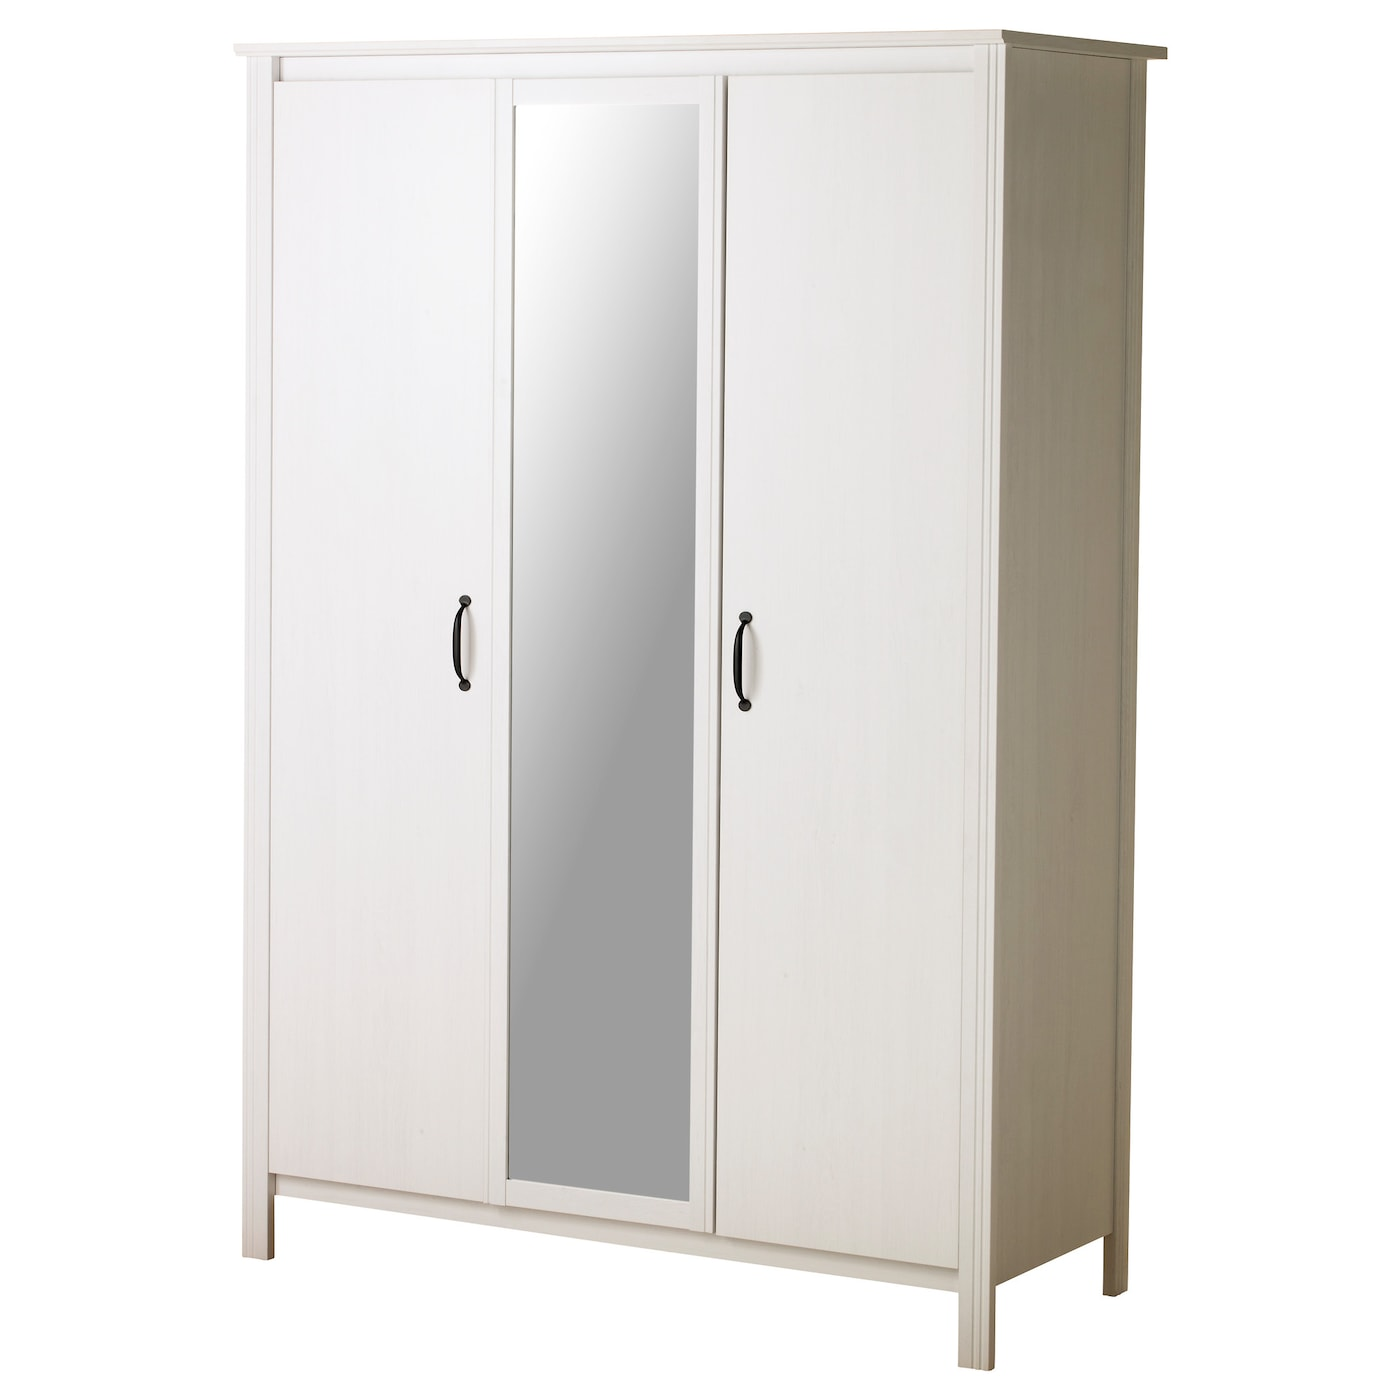 Brusali wardrobe with 3 doors white 131x190 cm ikea for Miroir 150x80